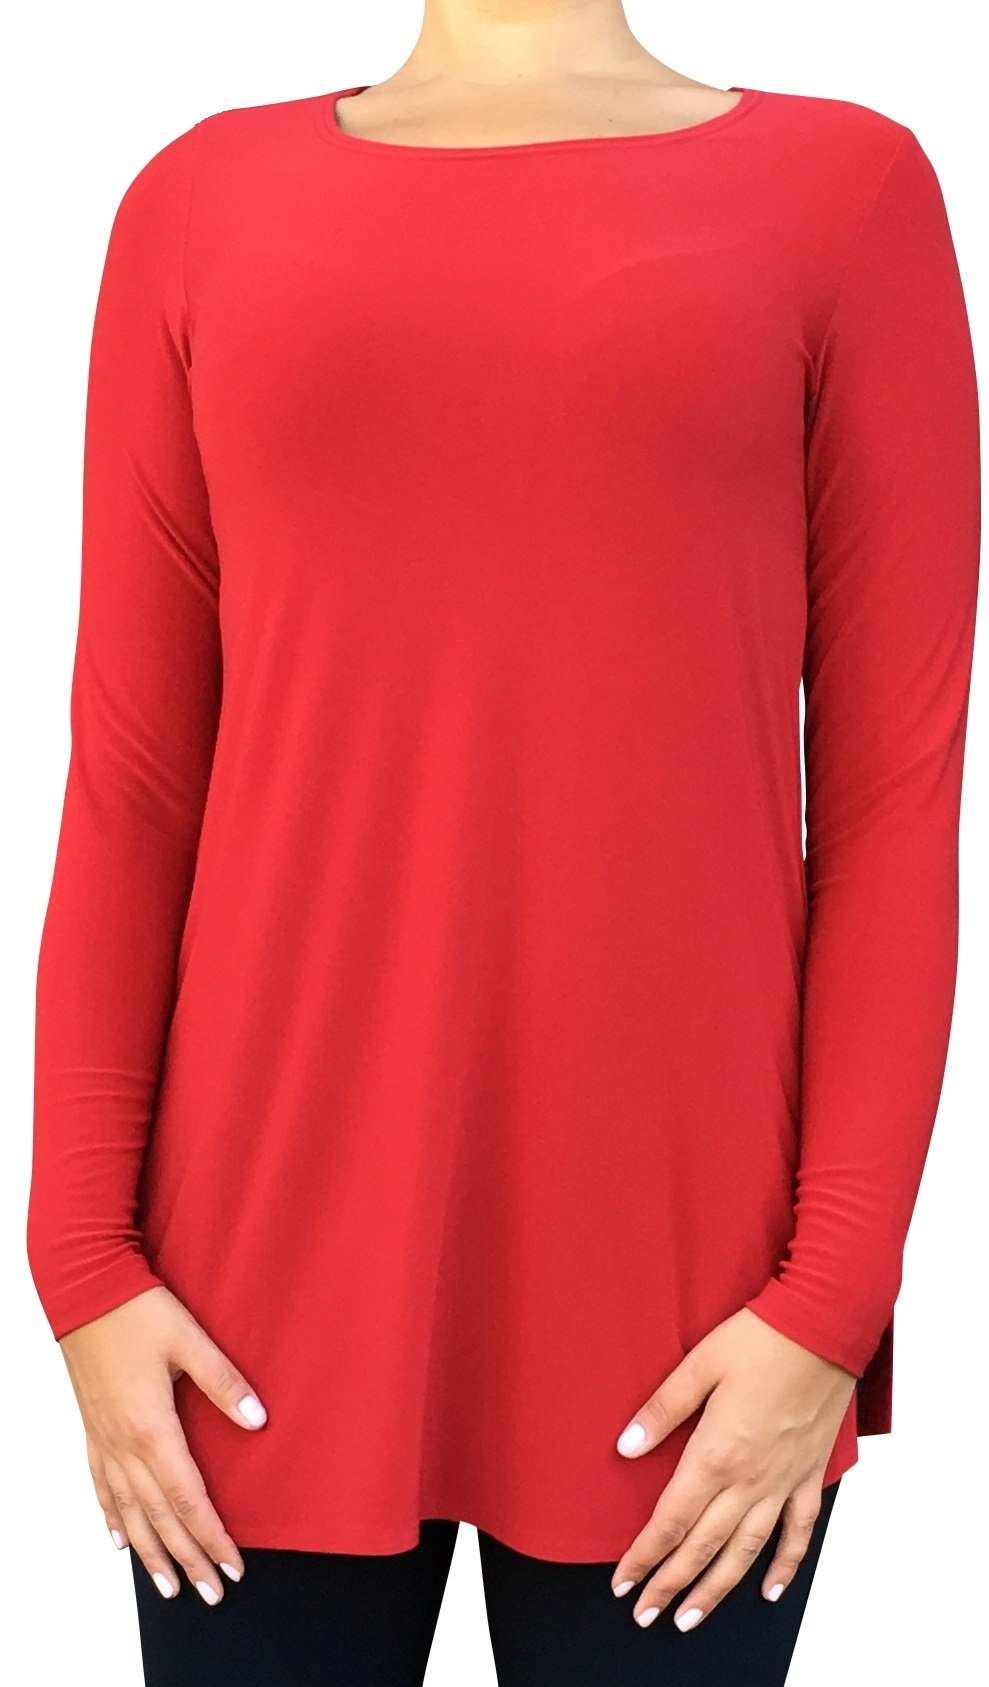 Sympli Womens Ideal Tunic Go To Classic Long Sleeves Size 14 Red